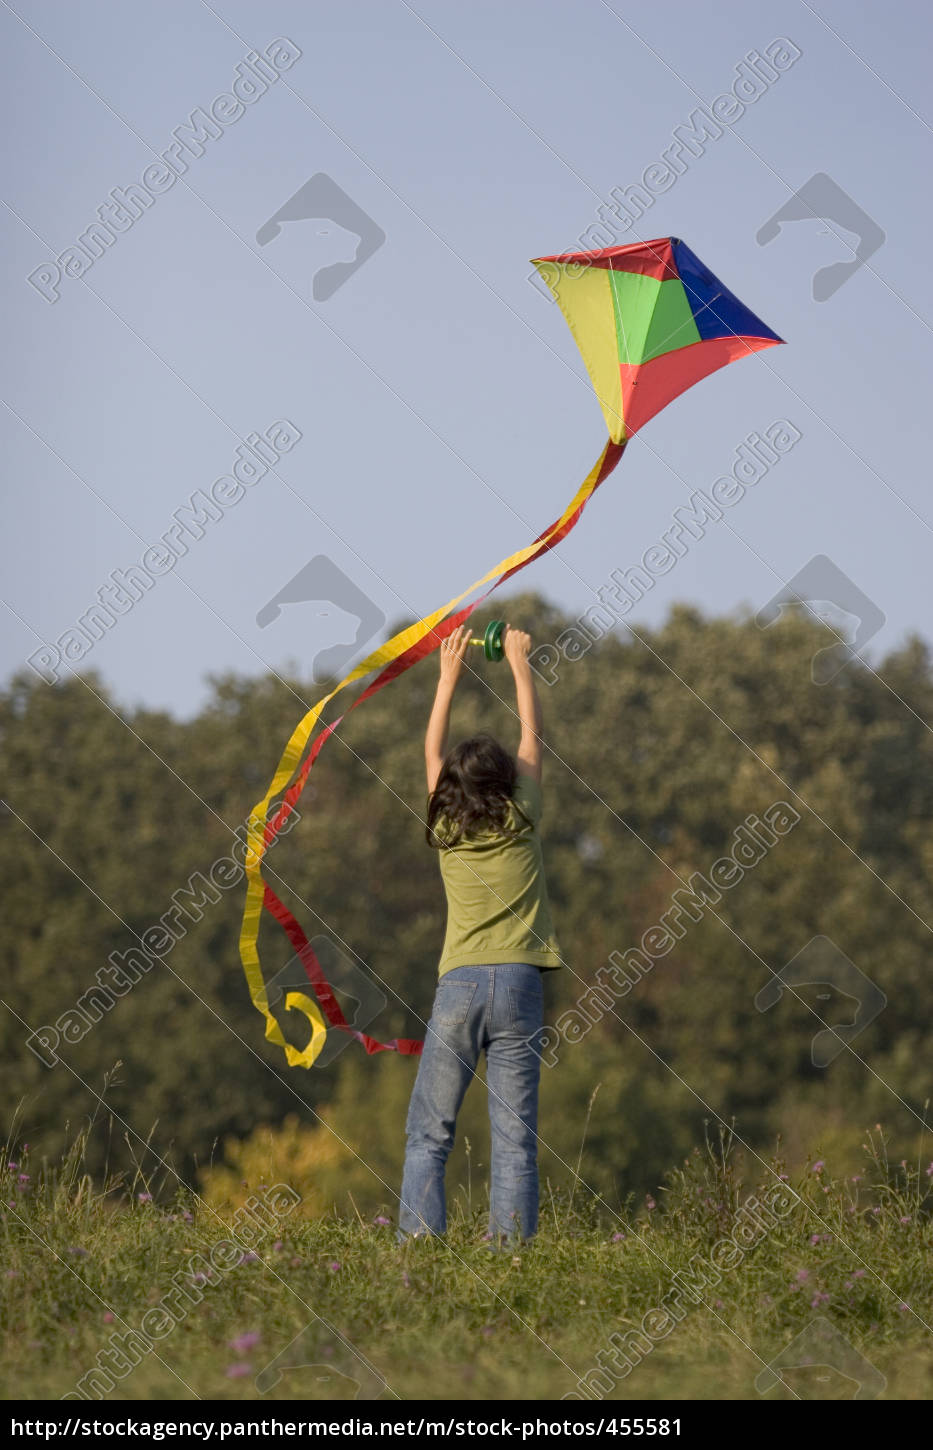 kite, flying, in, autumn - 455581